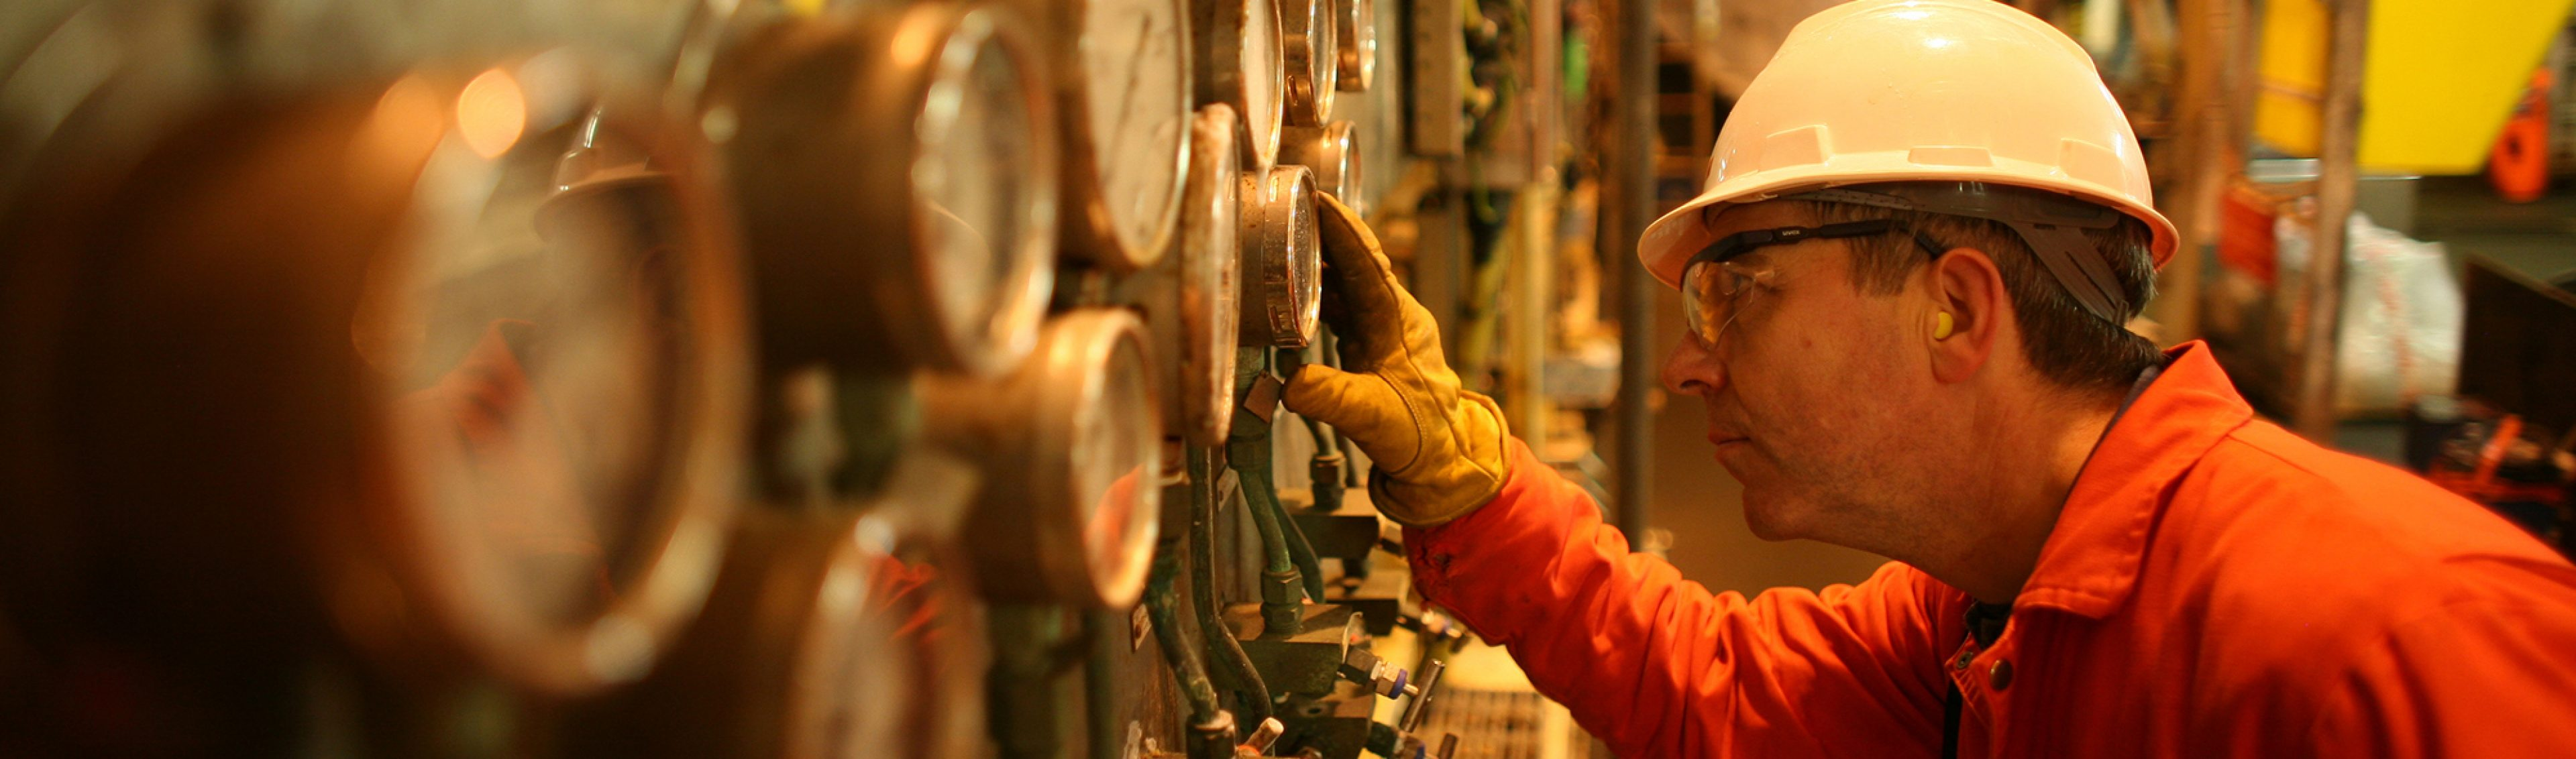 An Operations Technician takes a reading (monitoring) of the LP compressor gauge on board the Bruce platforms located north-east of Aberdeen, in the Northern North Sea, UK.